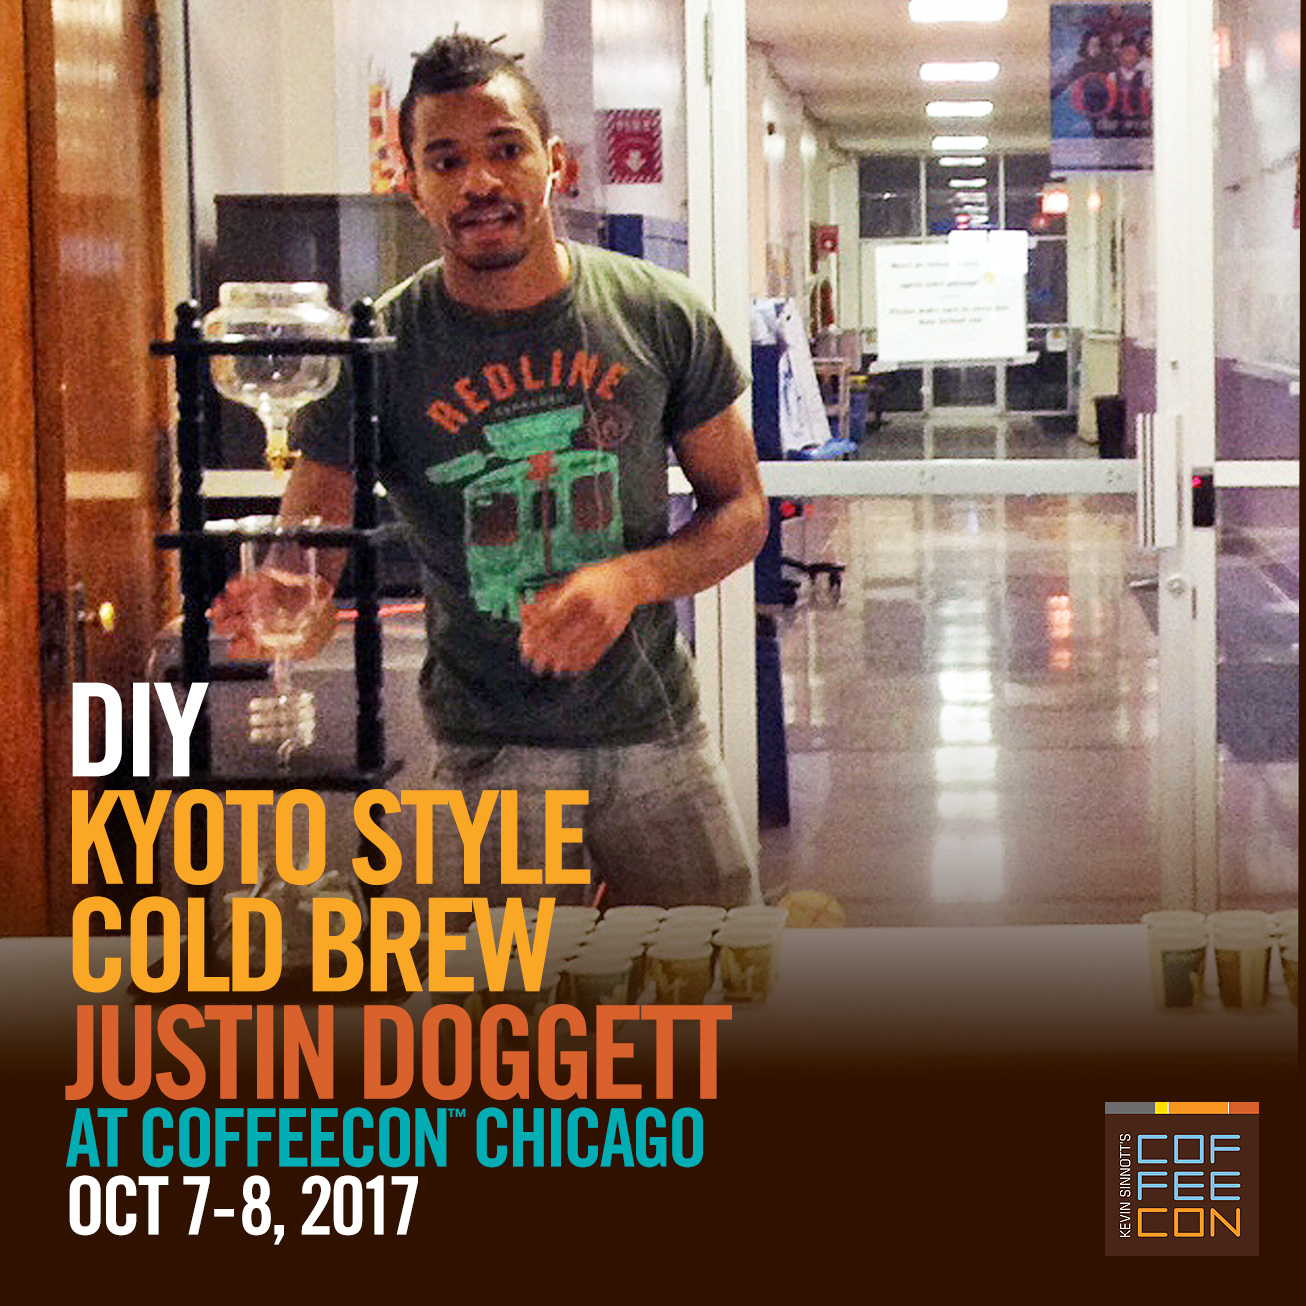 DYI Kyoto Style Cold Brew with Justin Doggett at CoffeeConChicago 2017